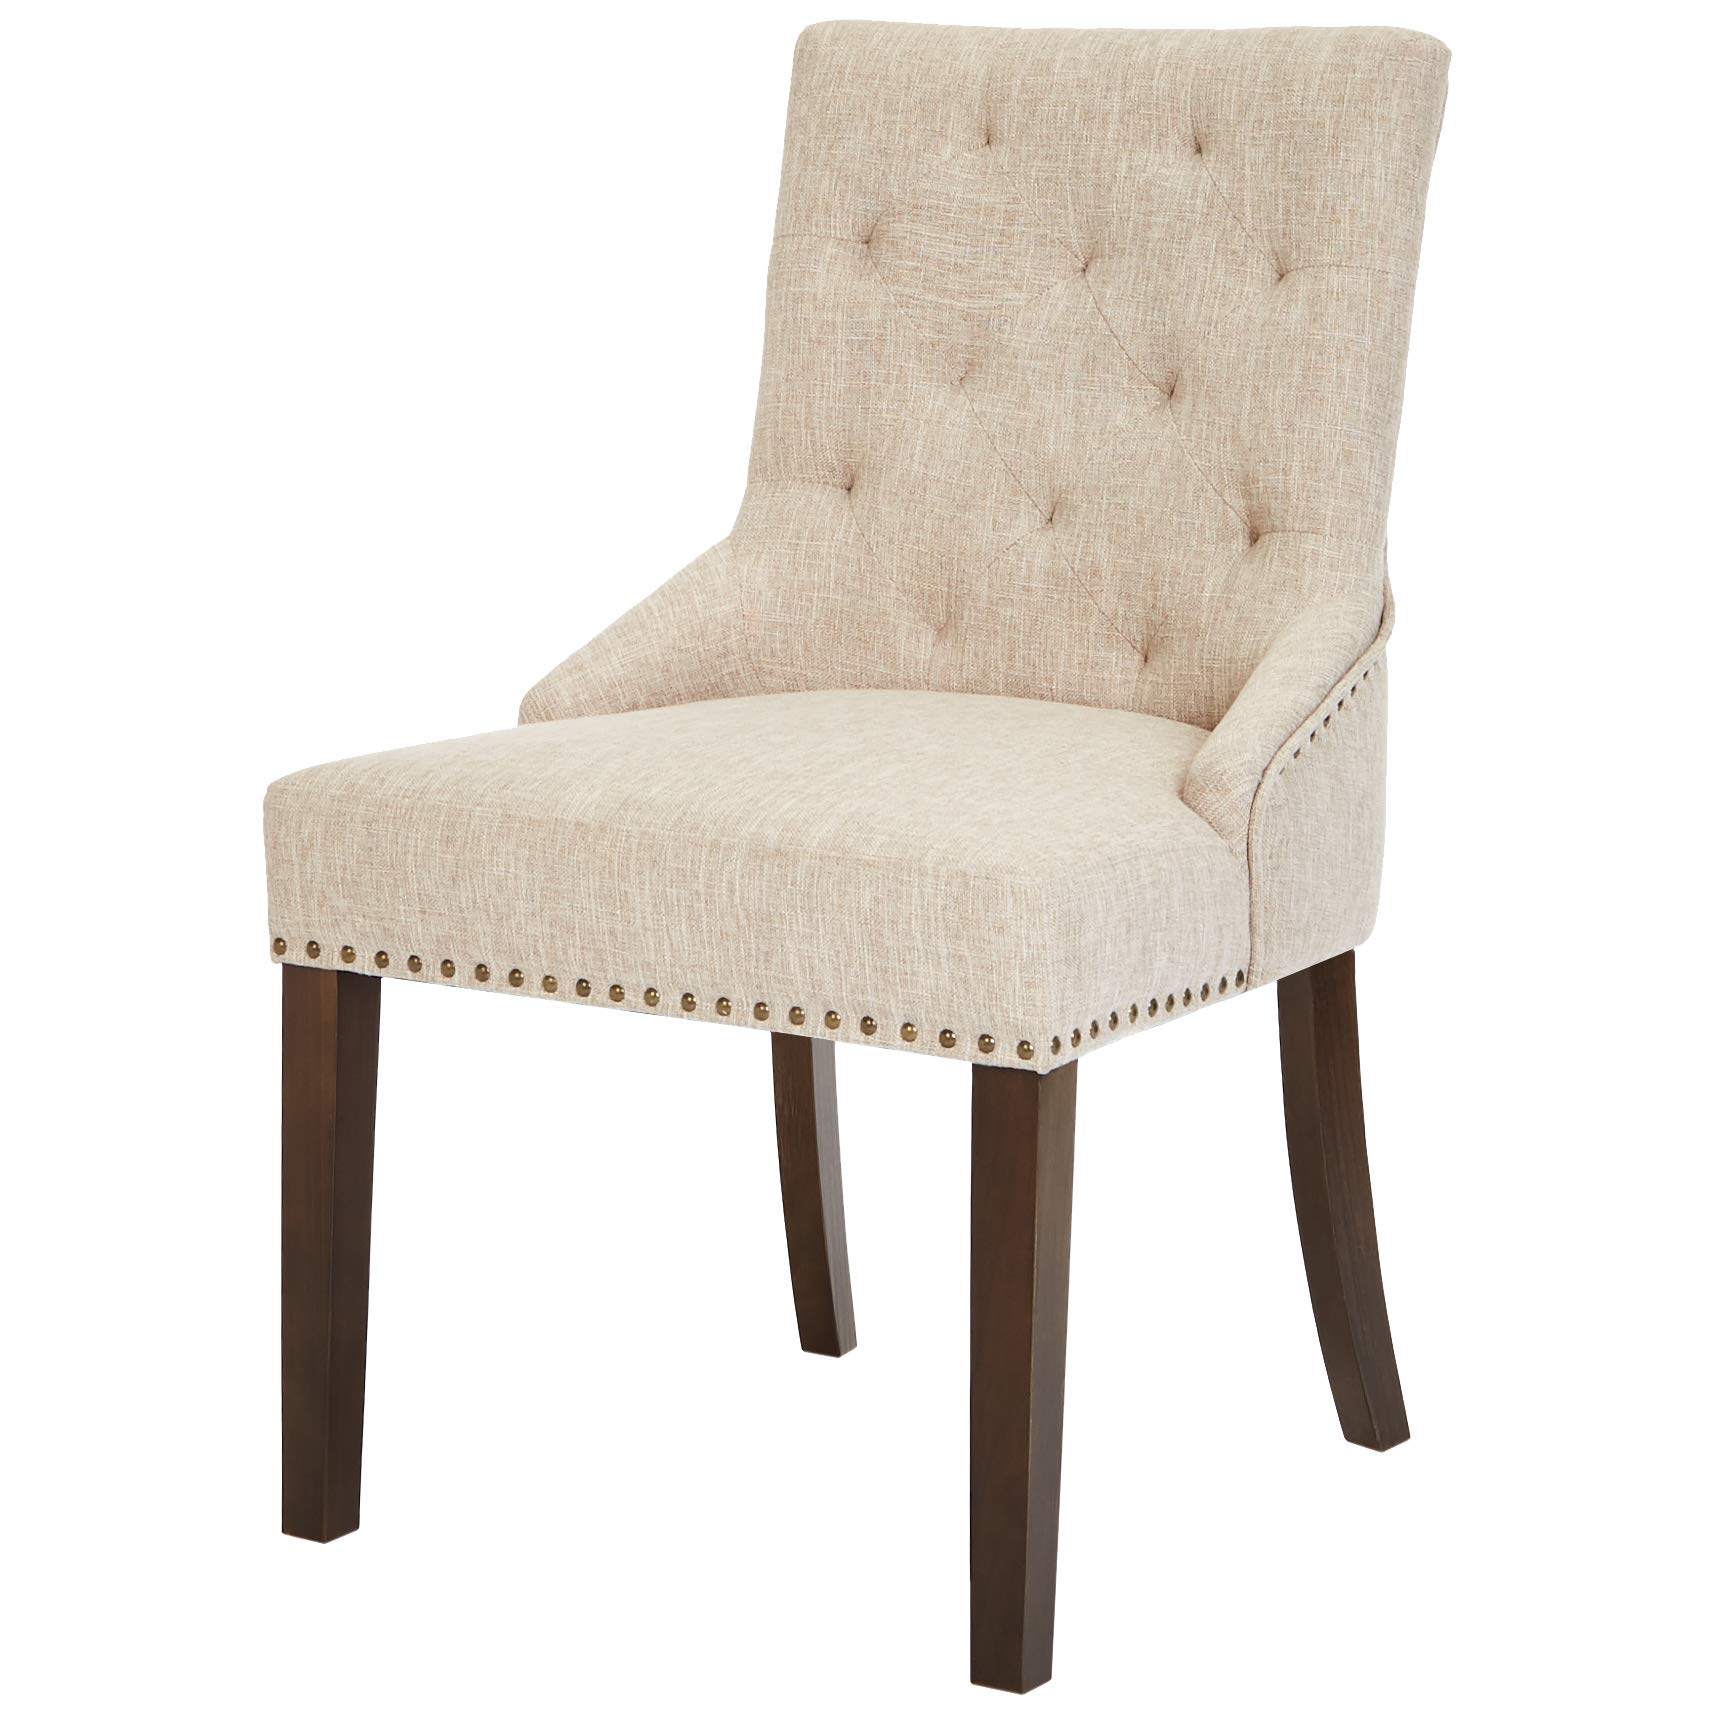 Red Hook Martil Upholstered Dining Chair with Nailhead Trim, Biscuit Beige, Set of 2 by Red Hook (Image #1)